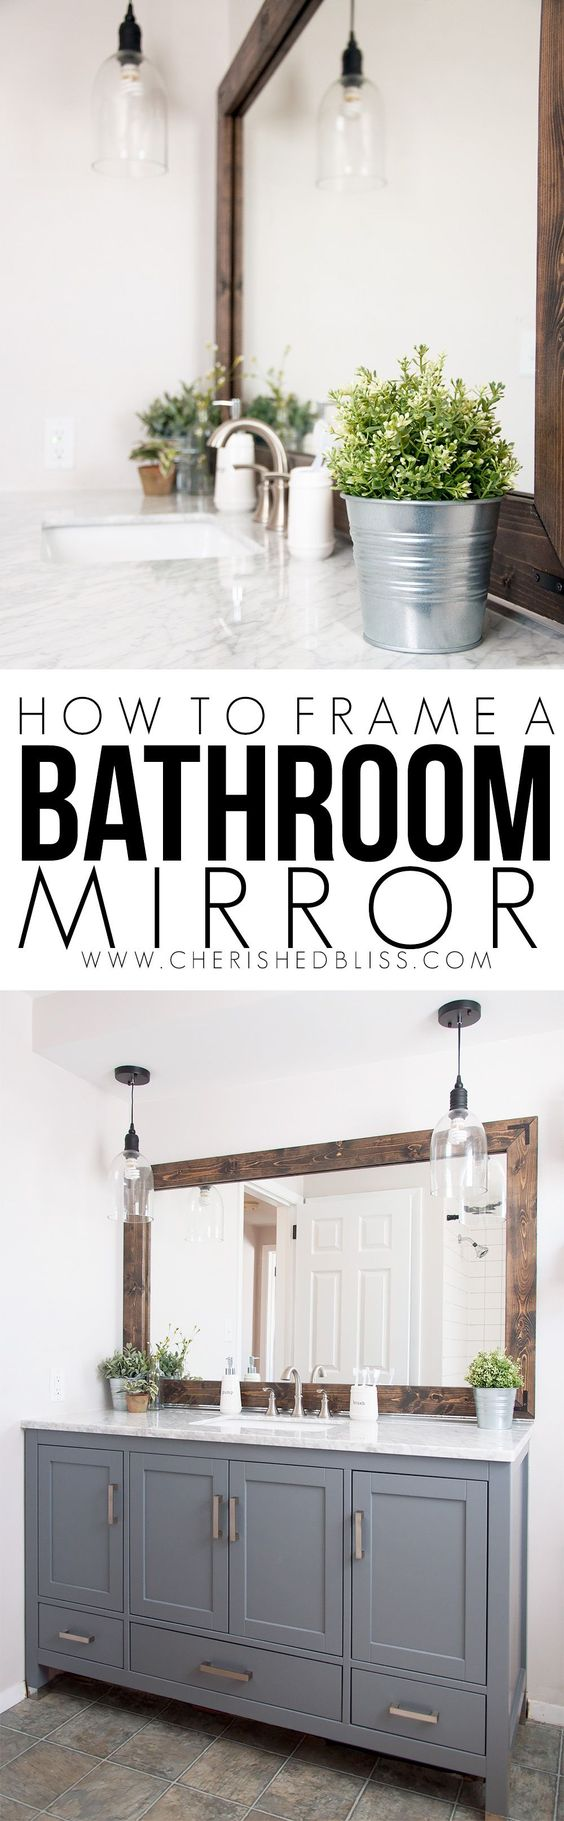 Improve the value of your bathroom with this easy tutorial on How to Frame a Bathroom Mirror!: